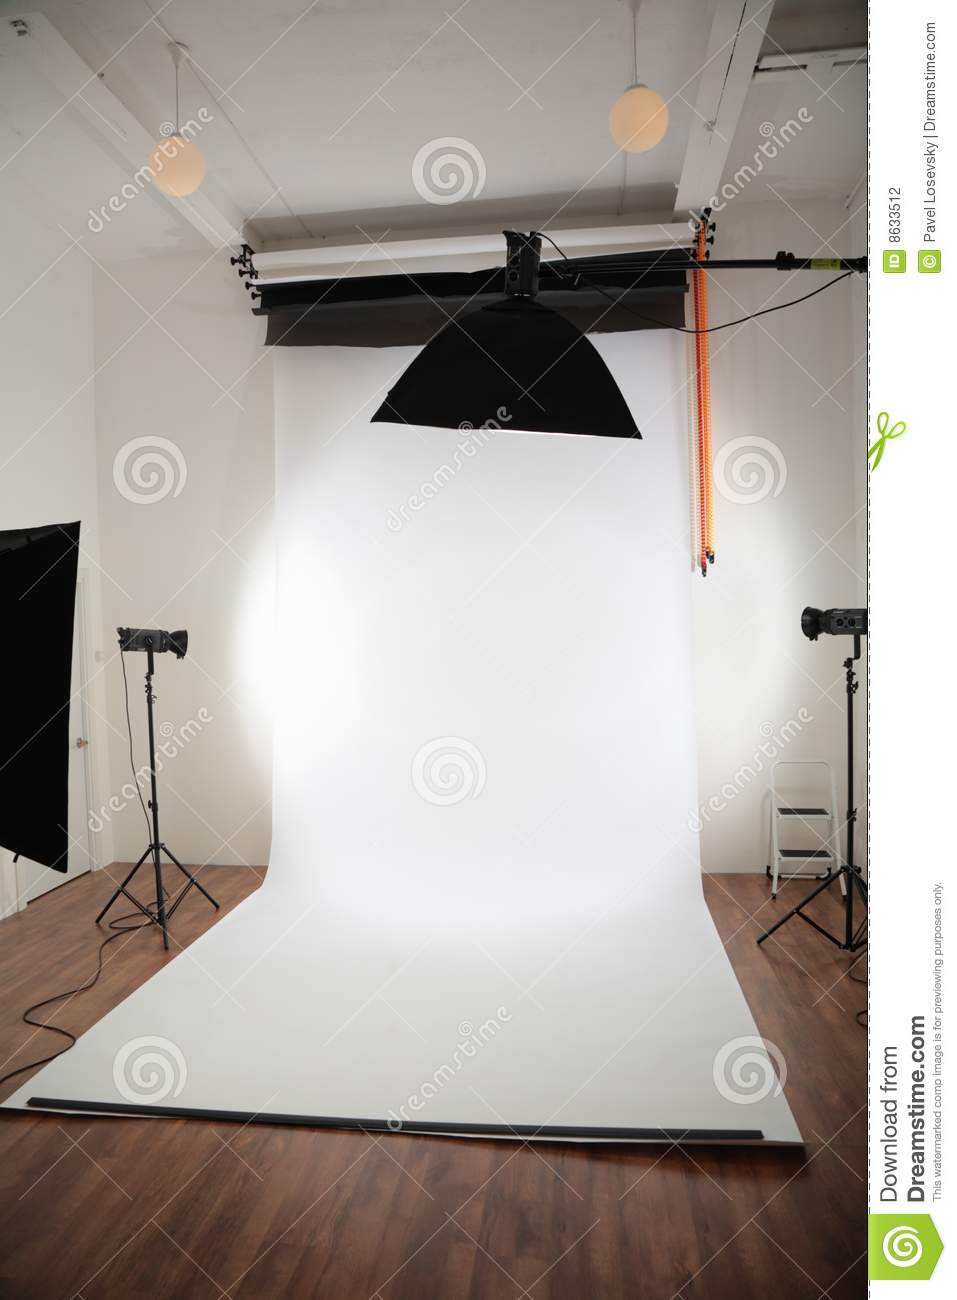 Photographic Studio Interior Stock Photography - Image: 8633512